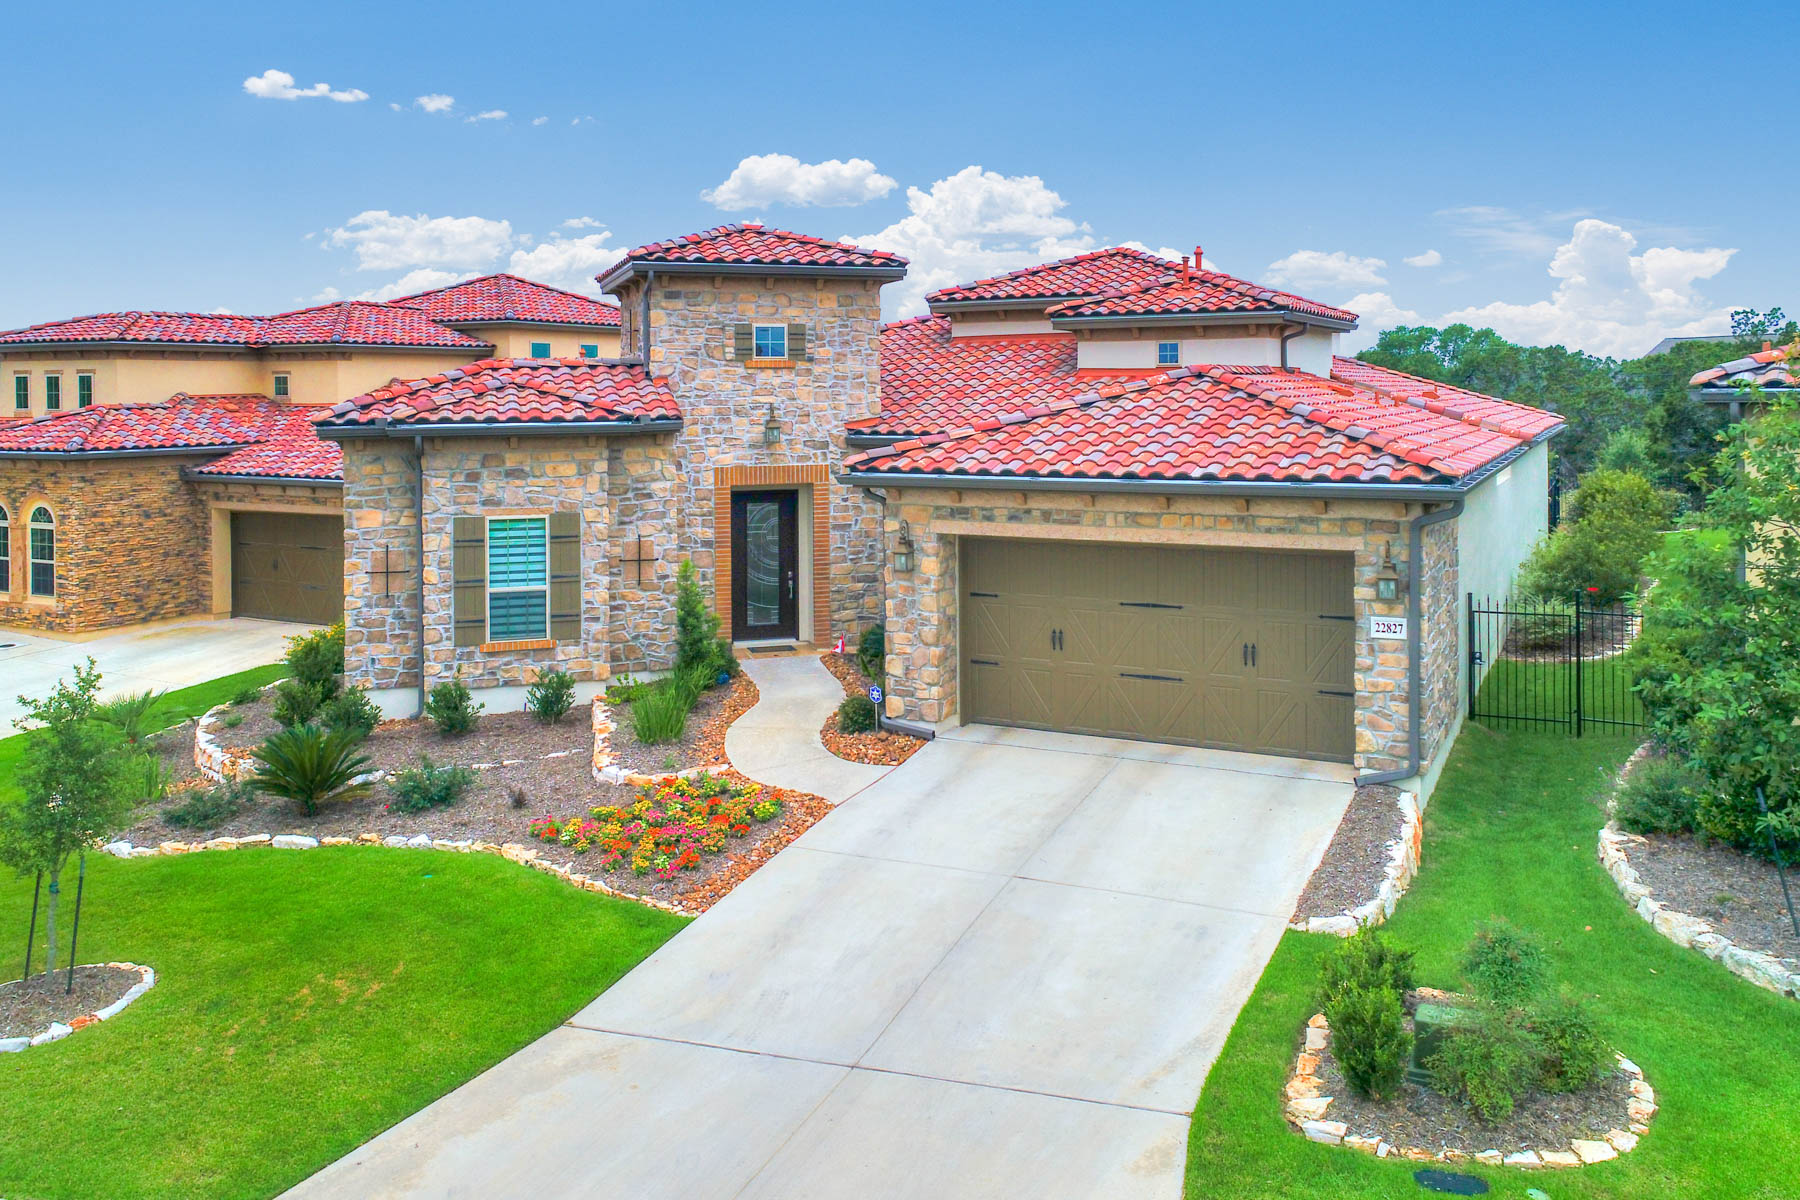 Single Family Home for Sale at Exceptional Home in a Tranquil Setting 22827 Estacado San Antonio, Texas 78261 United States